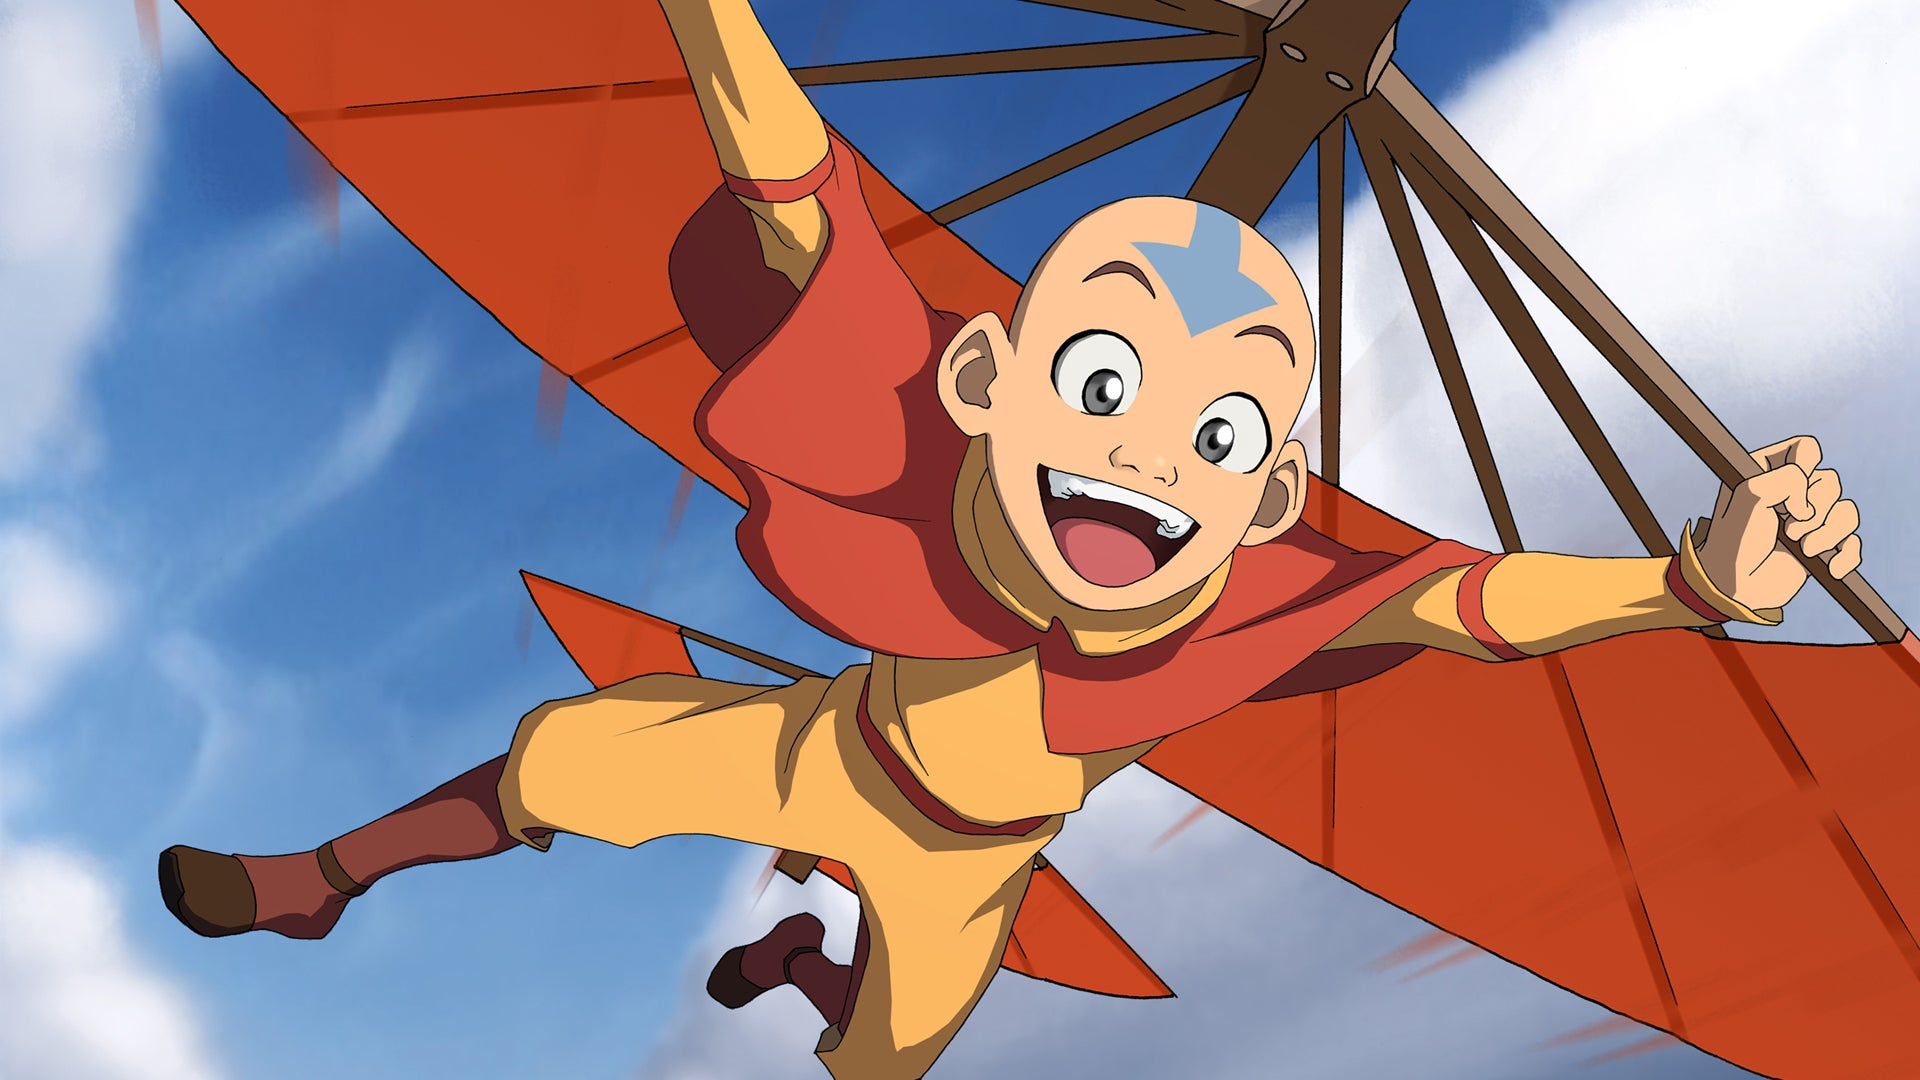 Avatar: The Last Airbender Is One Of The Greatest TV Shows Of All Time